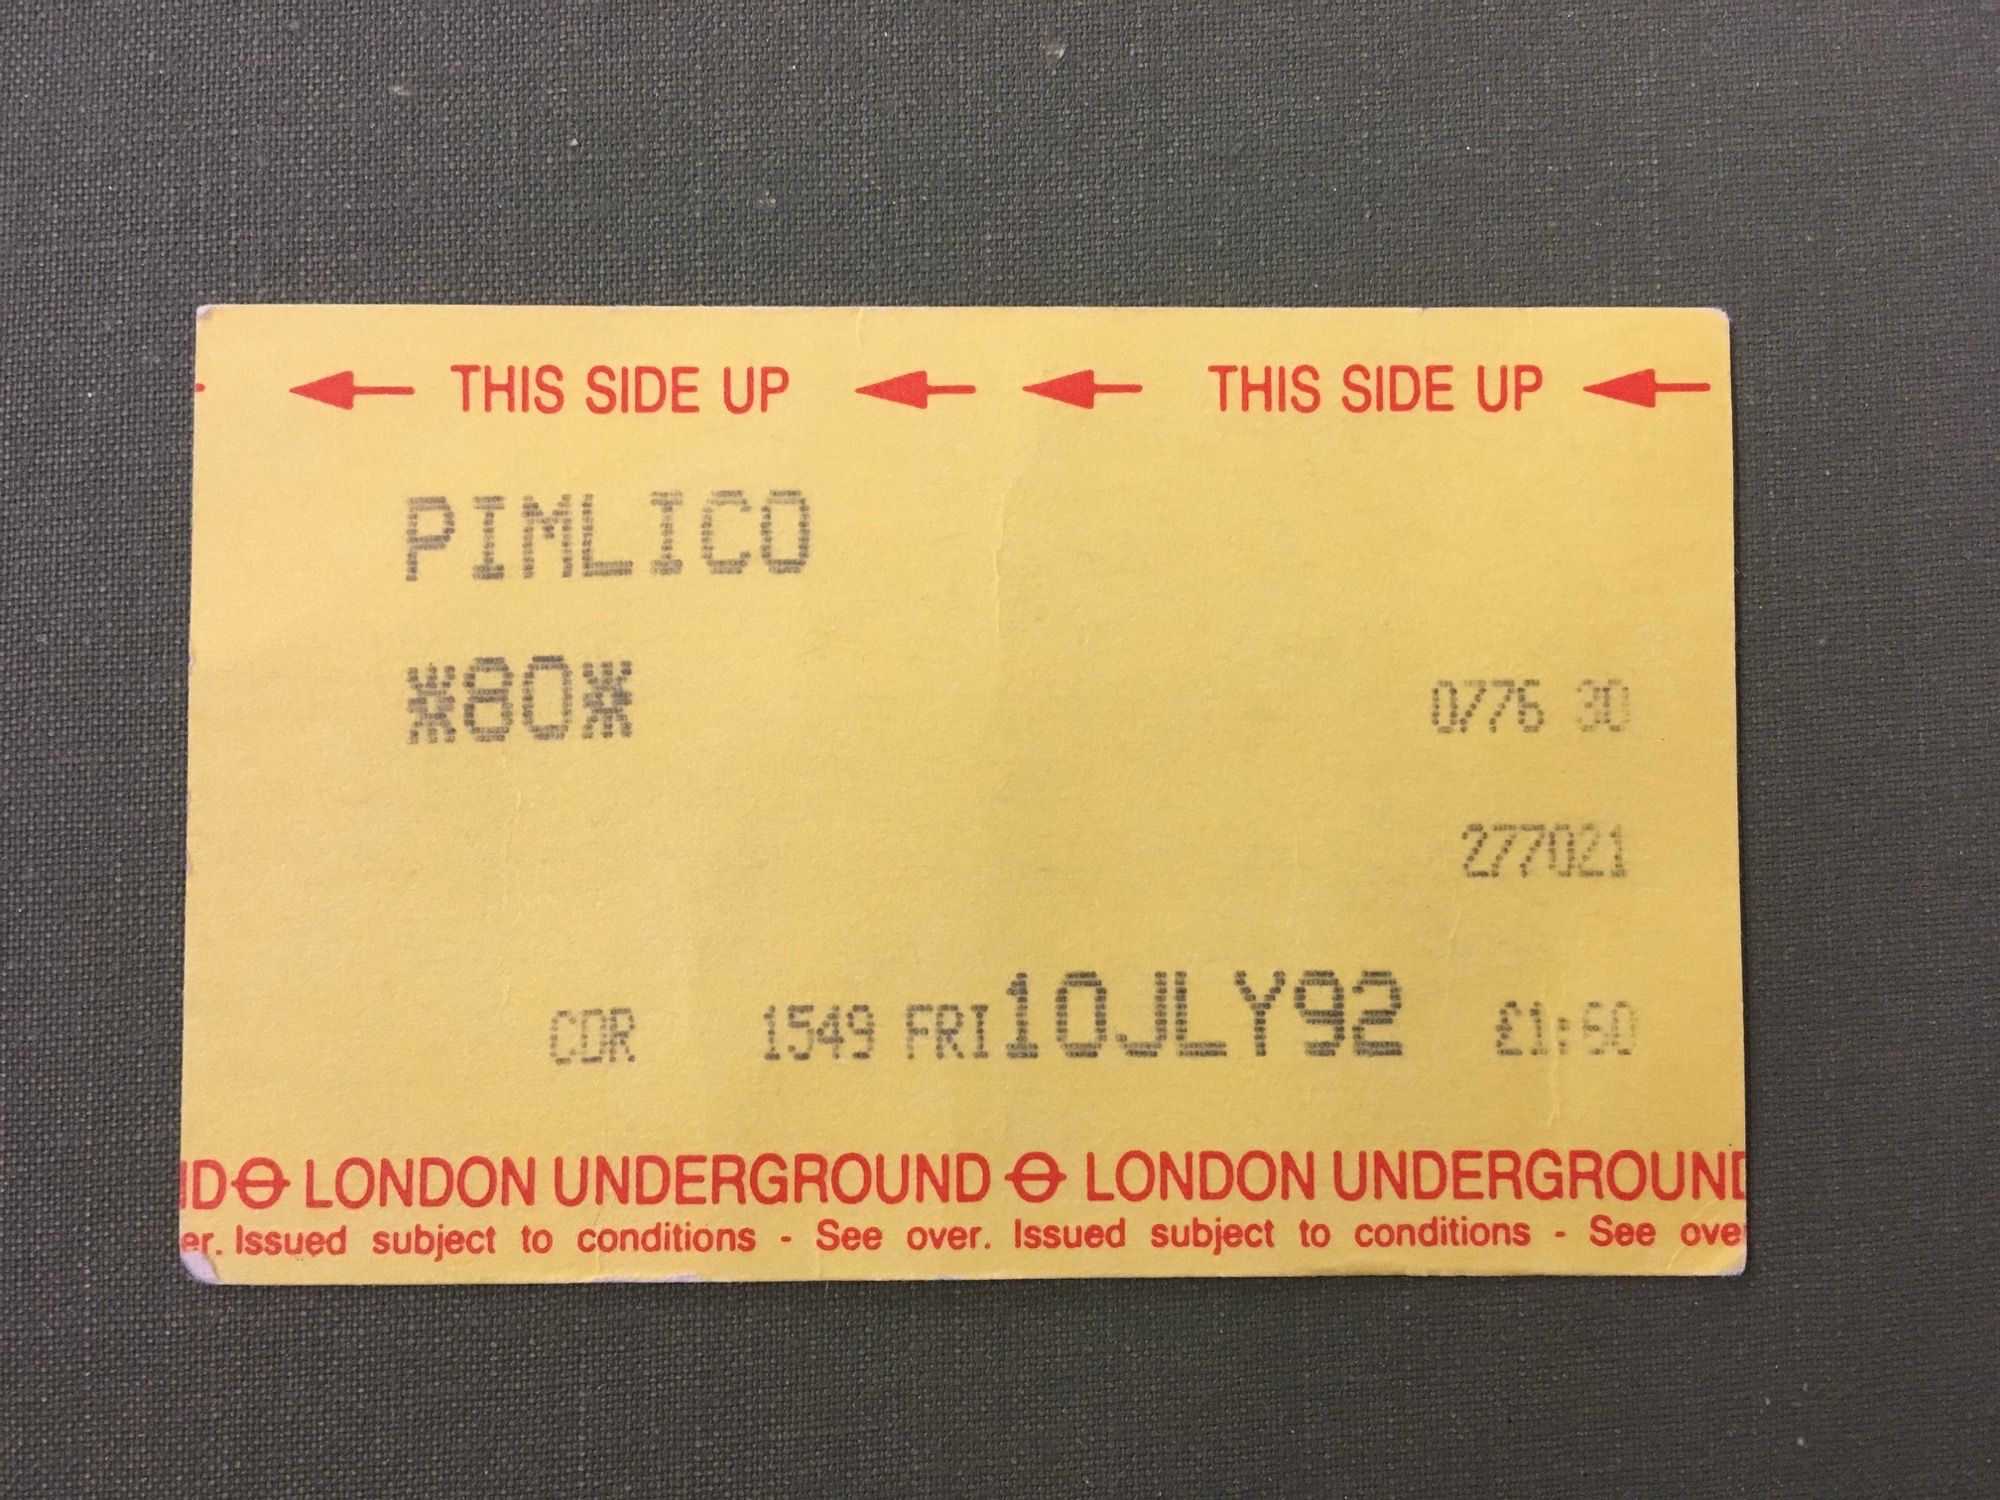 london underground metro pass for pimlico station dated 10 july 92